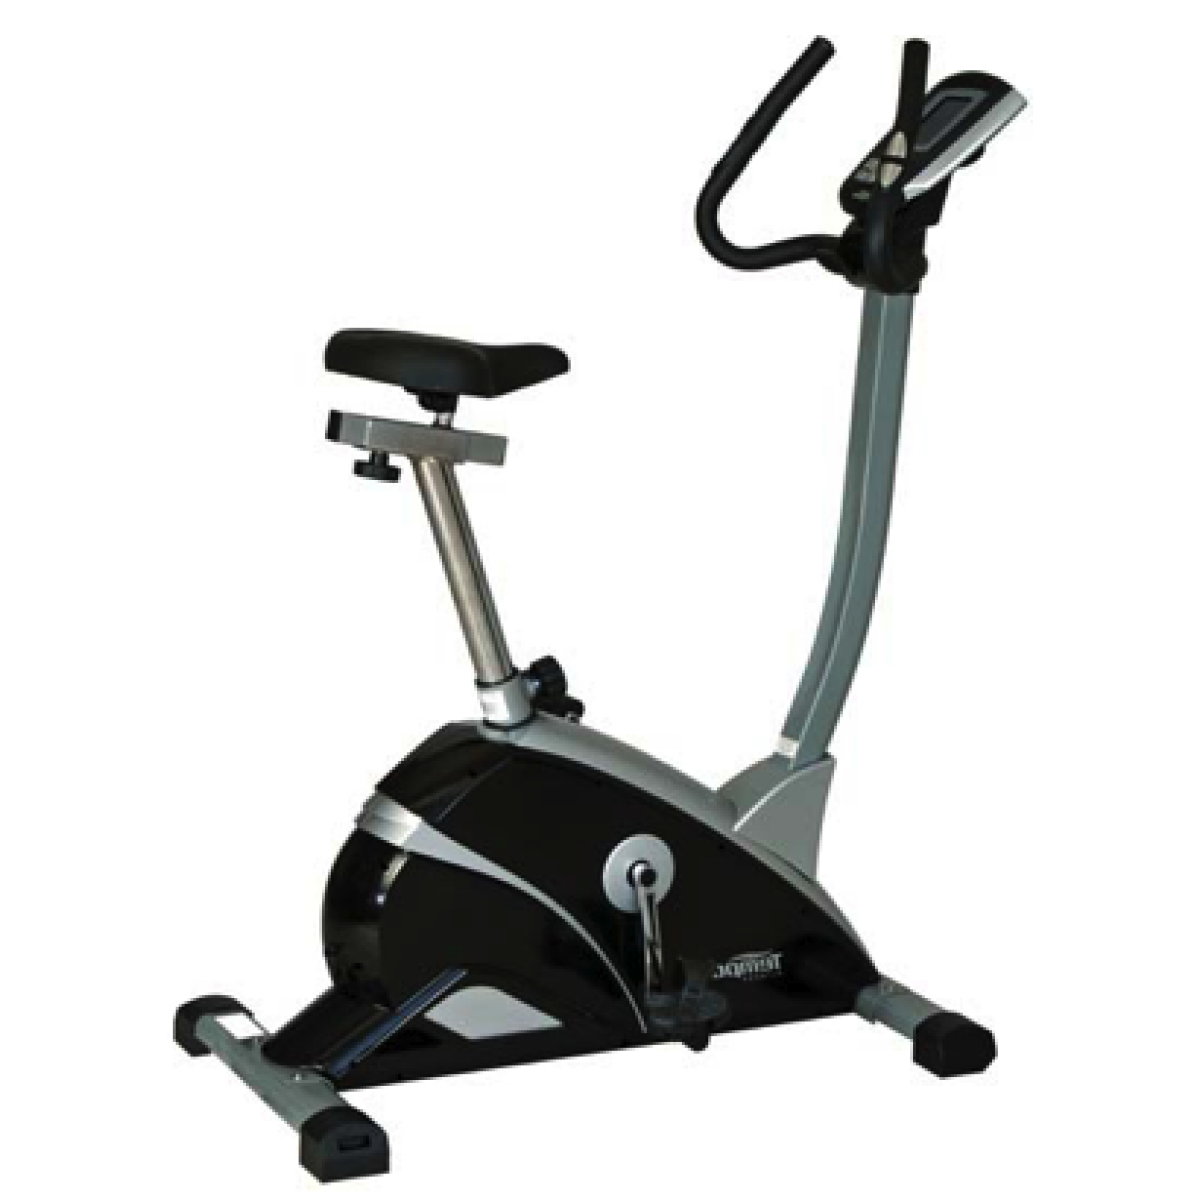 Gym clipart cycling machine. Exercise bike png transparent